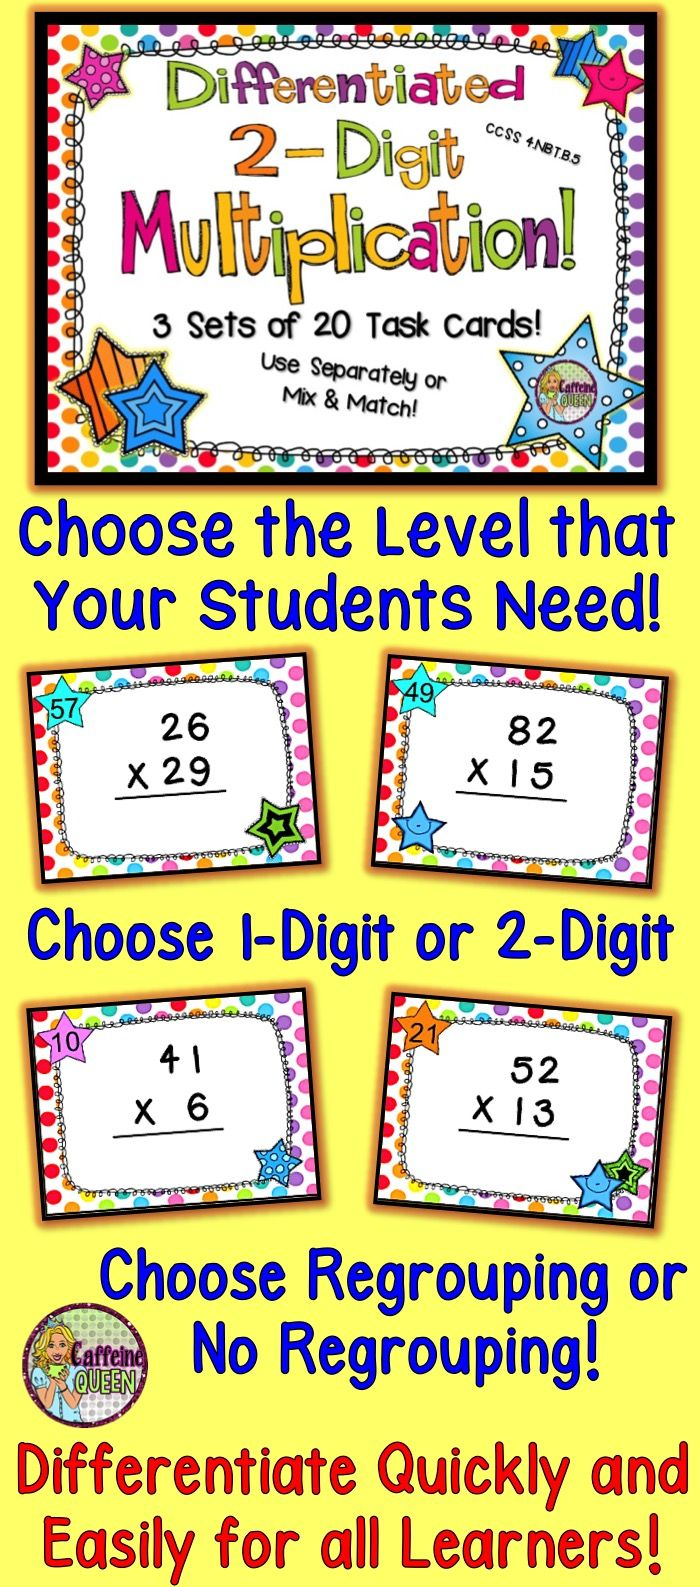 Individualize for your students quickly and easily! HUGE 60 Task Card Set!